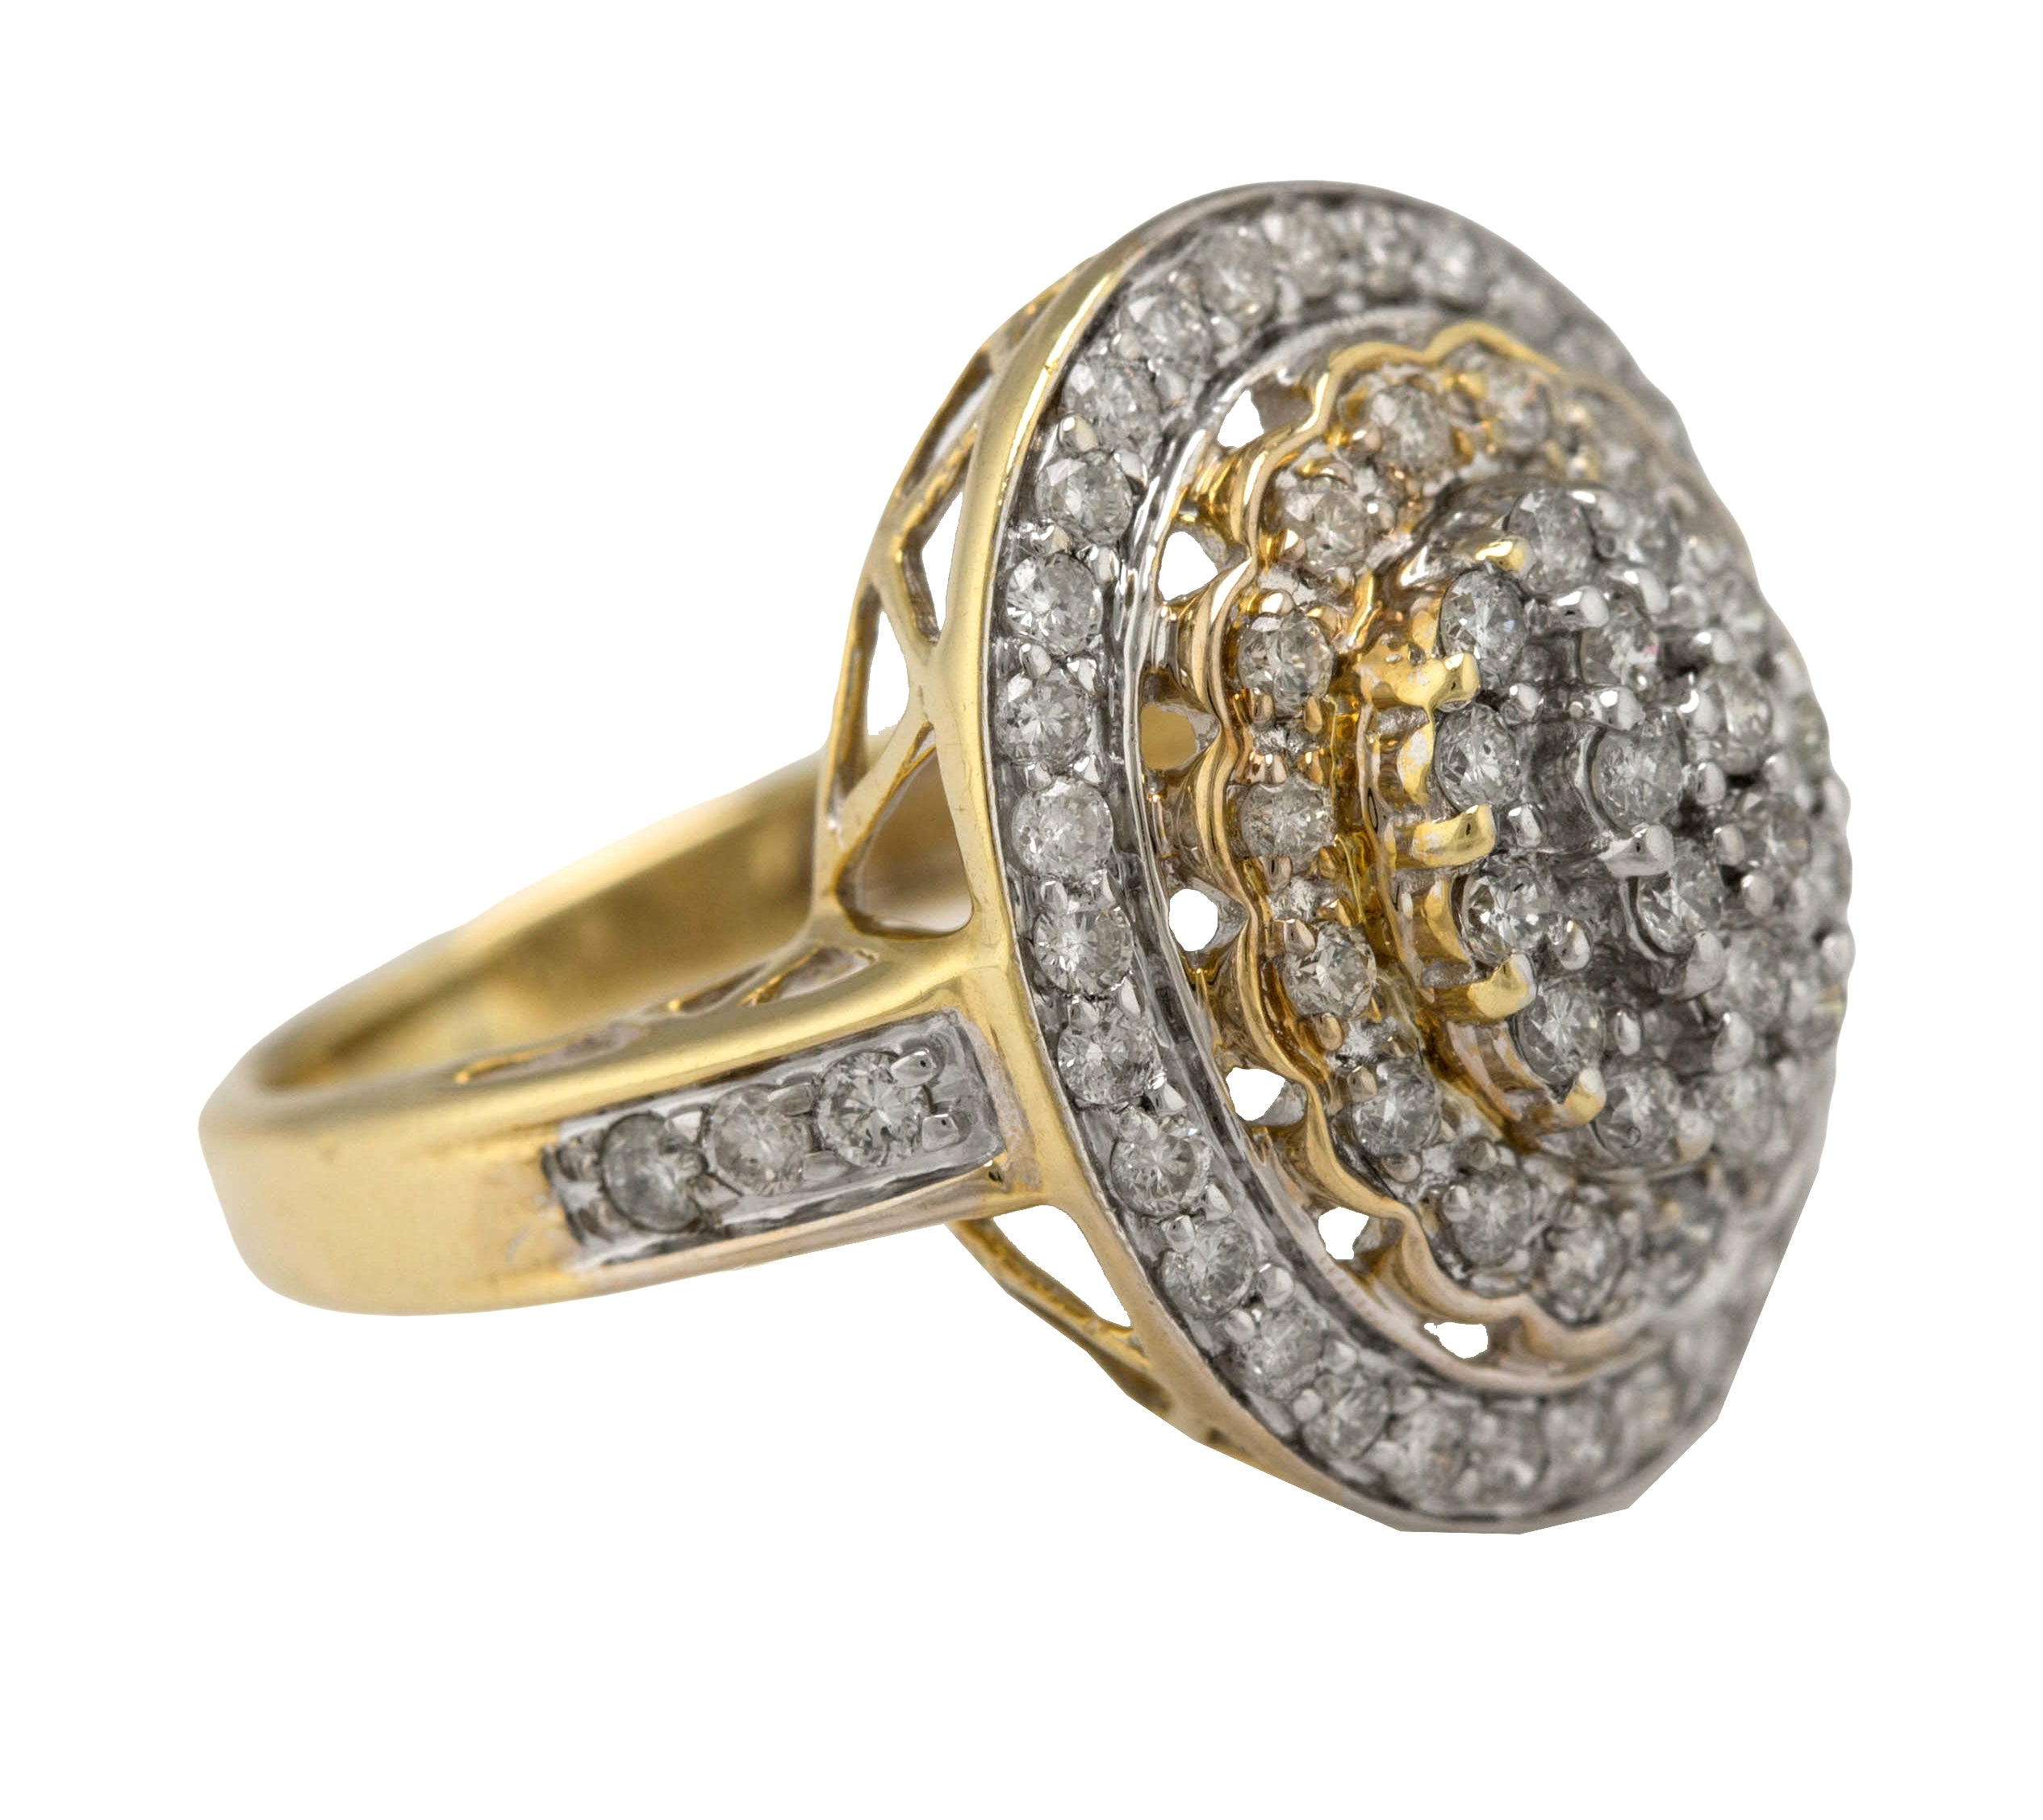 Ladies Elegant 14K Yellow Gold 1.46ctw Diamond Cluster Cocktail Ring